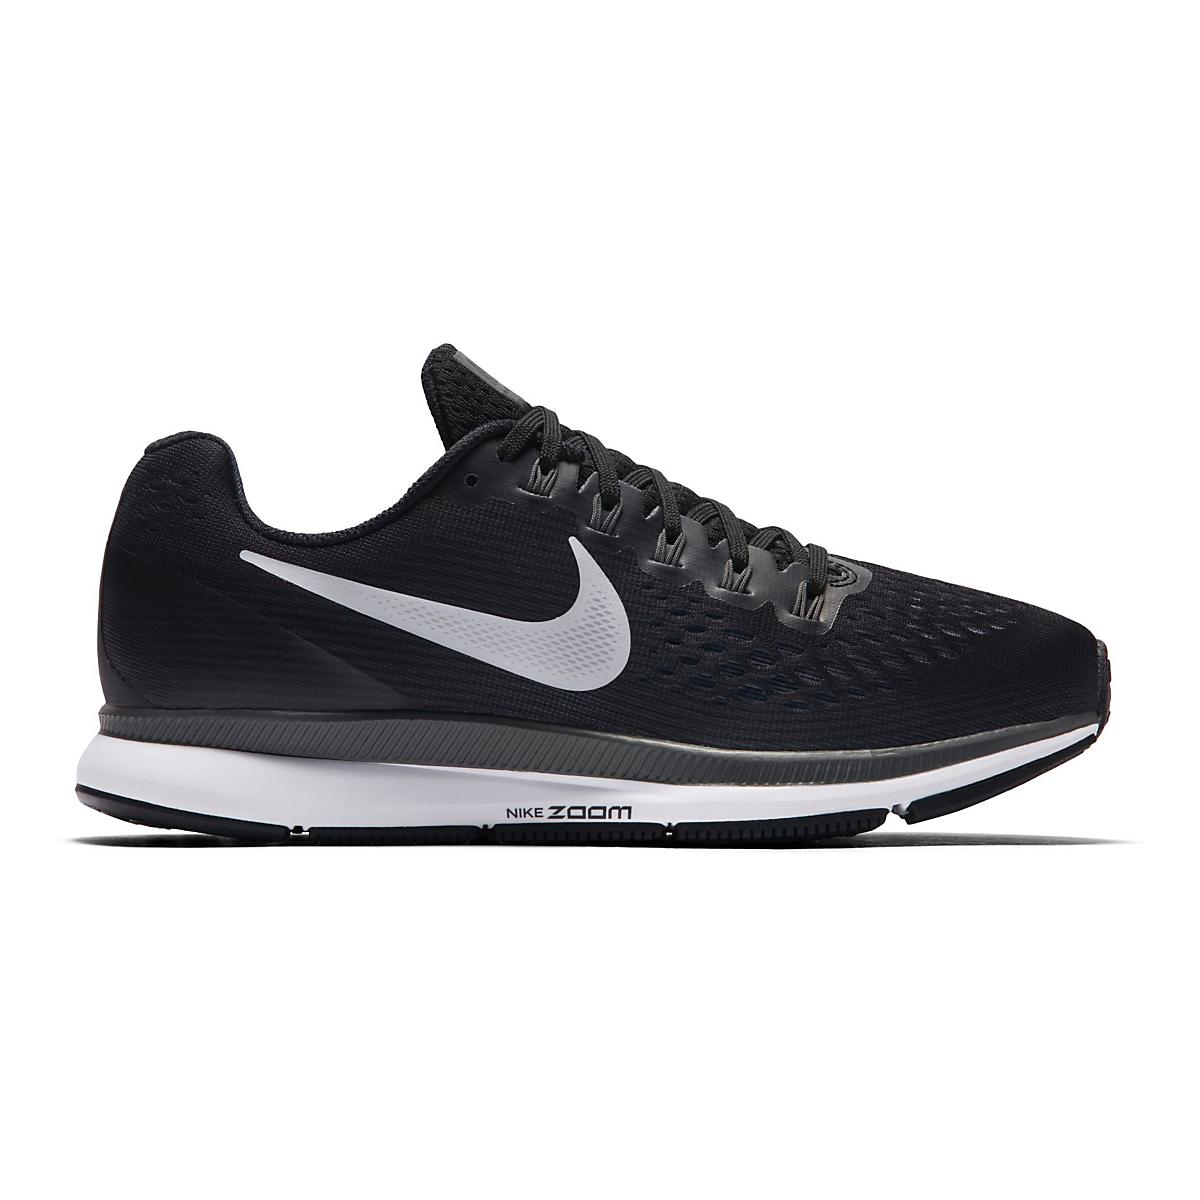 c9b60a8f8c12 Nike Air Zoom Pegasus 34 Women s Running Shoes